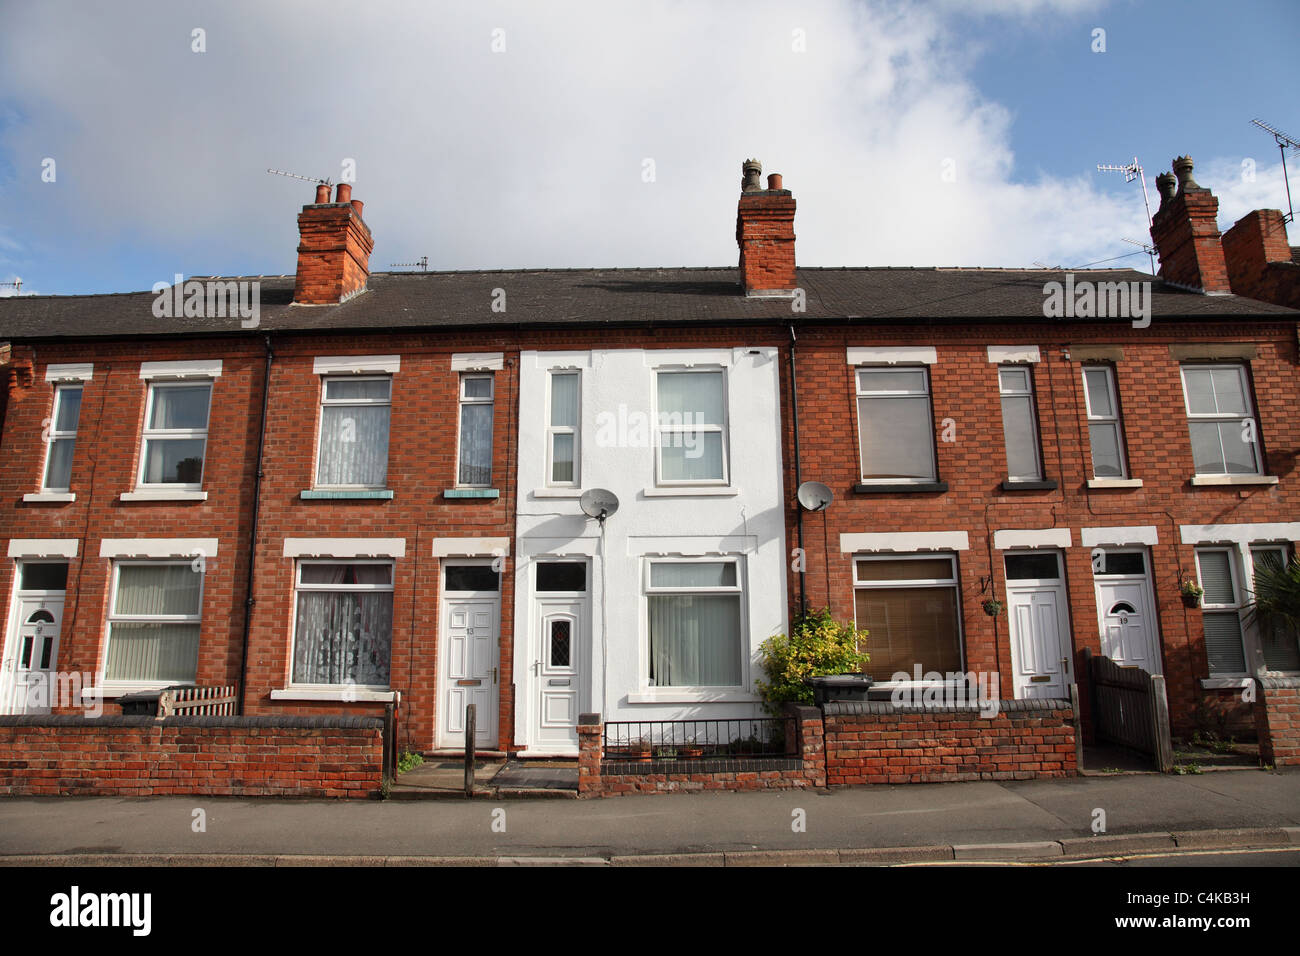 Terraced houses in arnold nottingham england u k stock for Terrace in house